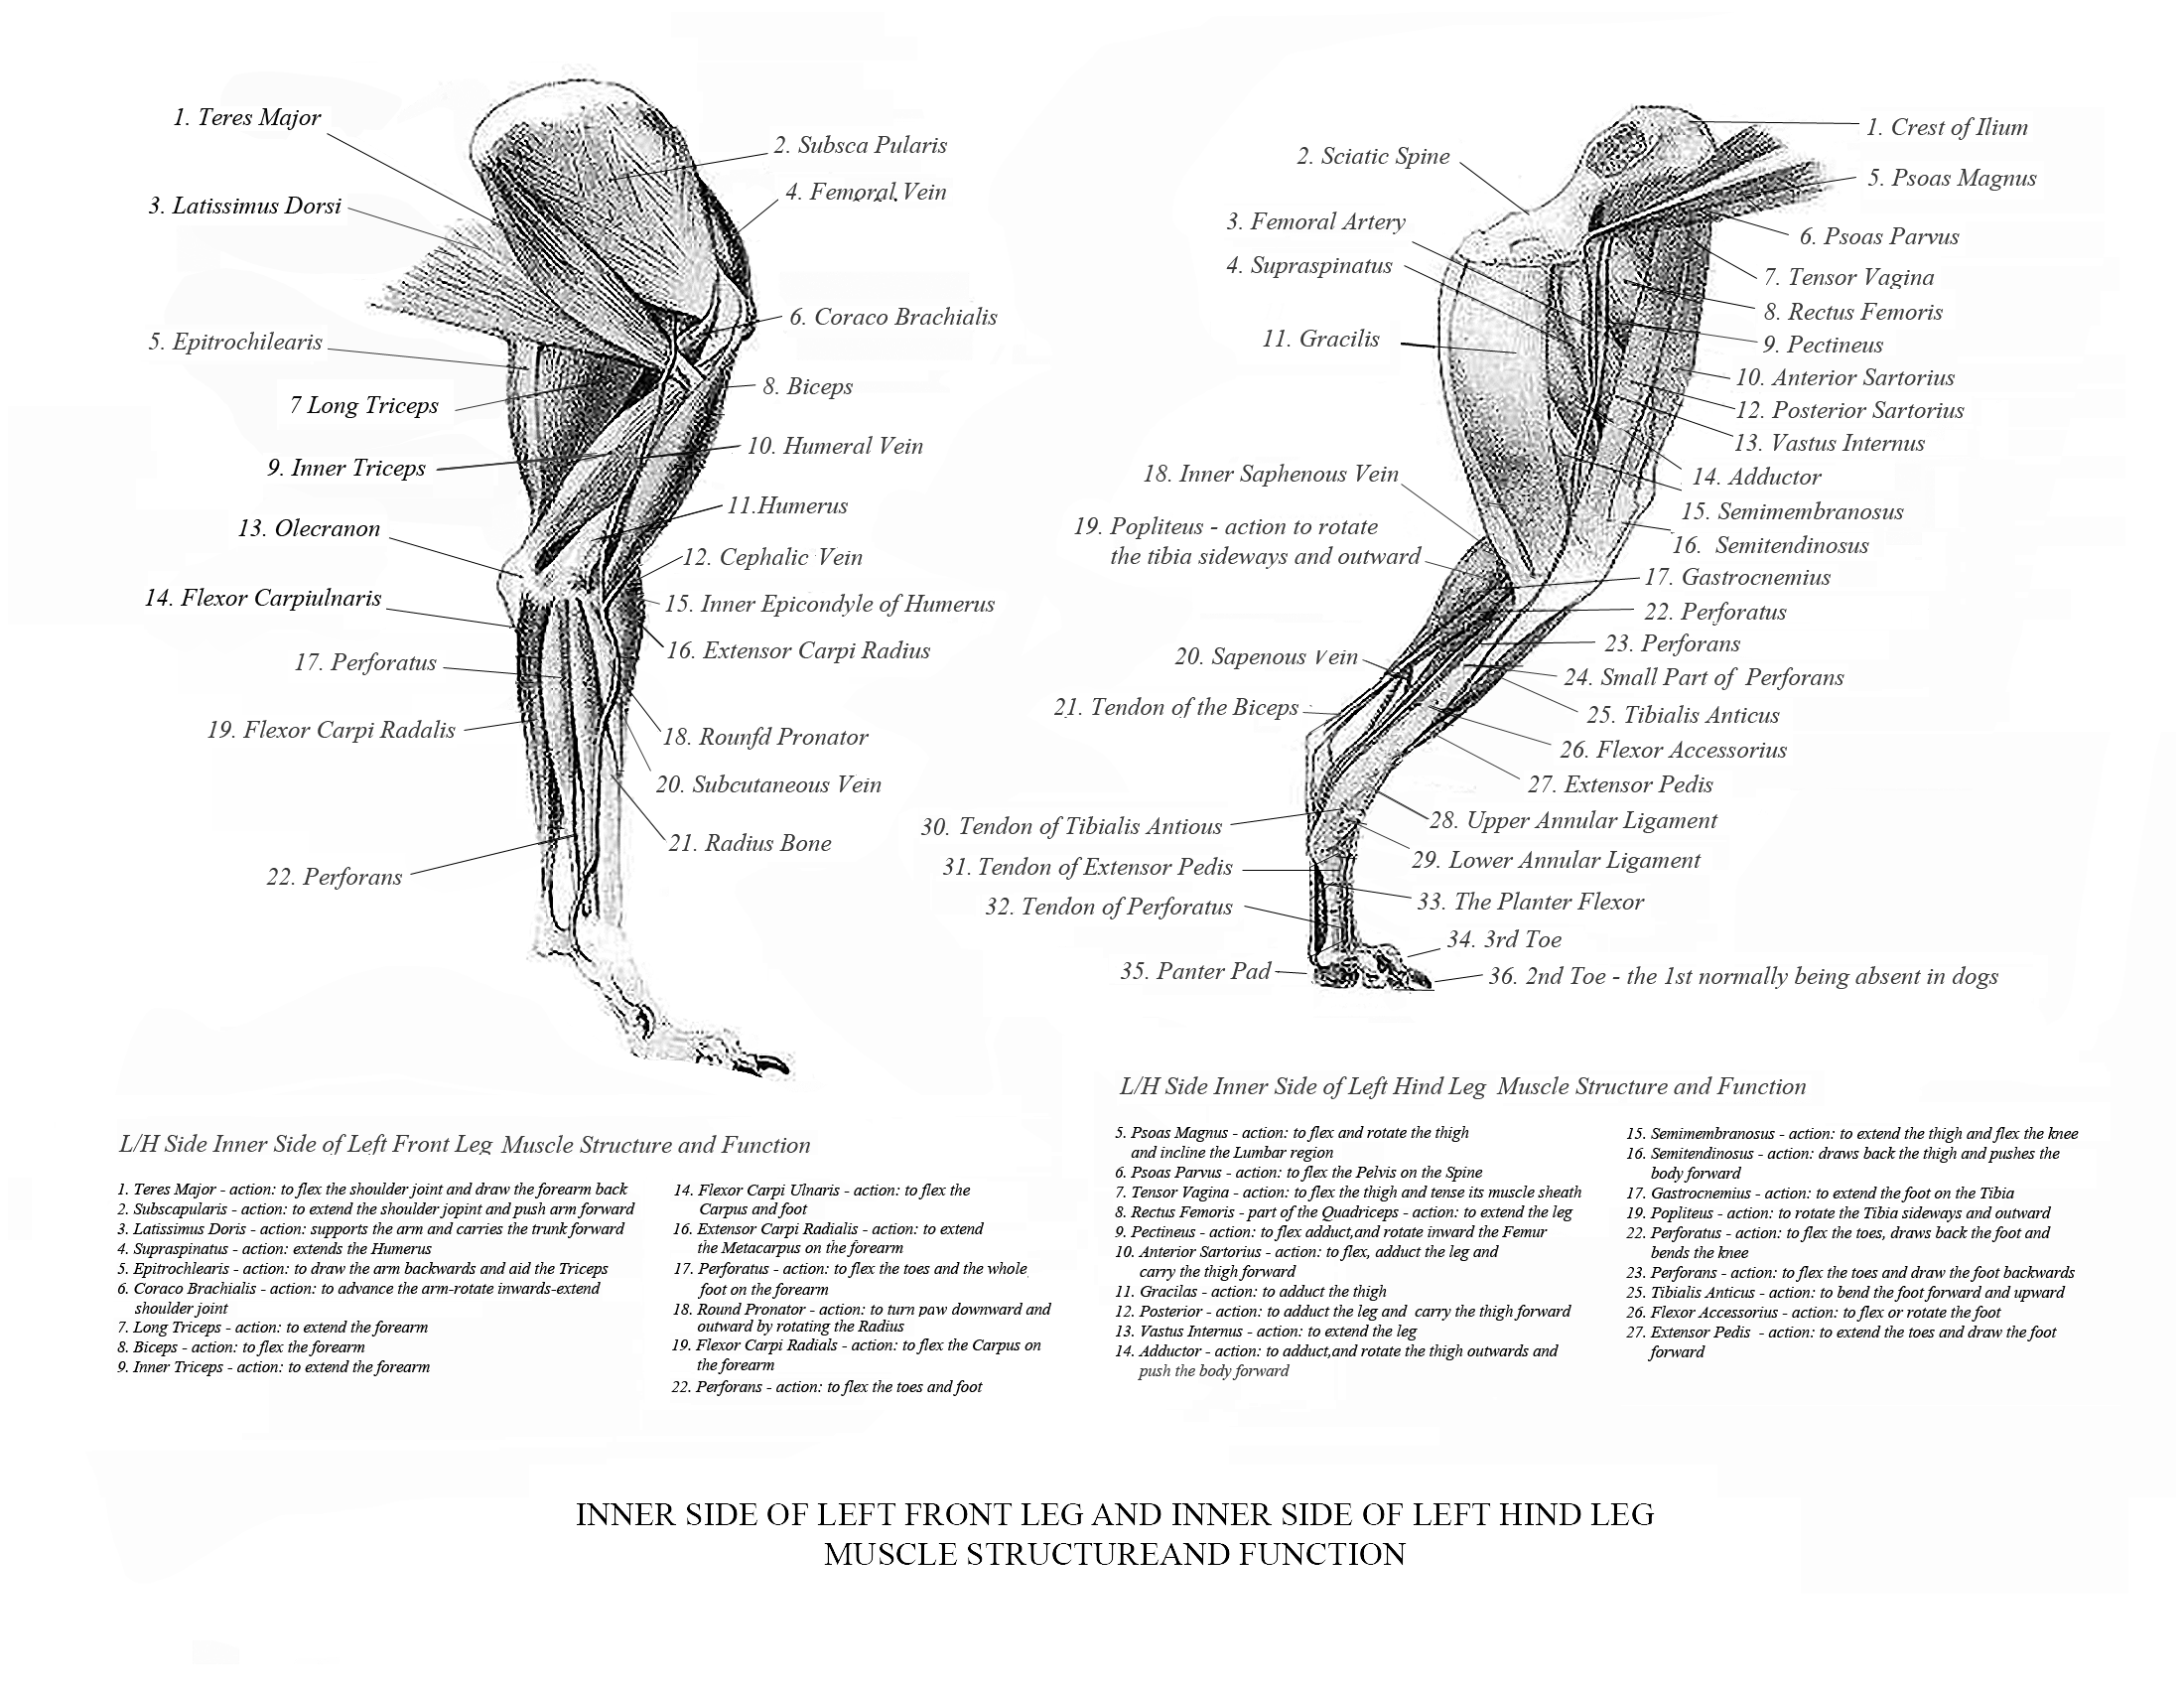 Greyhound Anatomy Diagram - The Inner Side of the Front Leg and ...